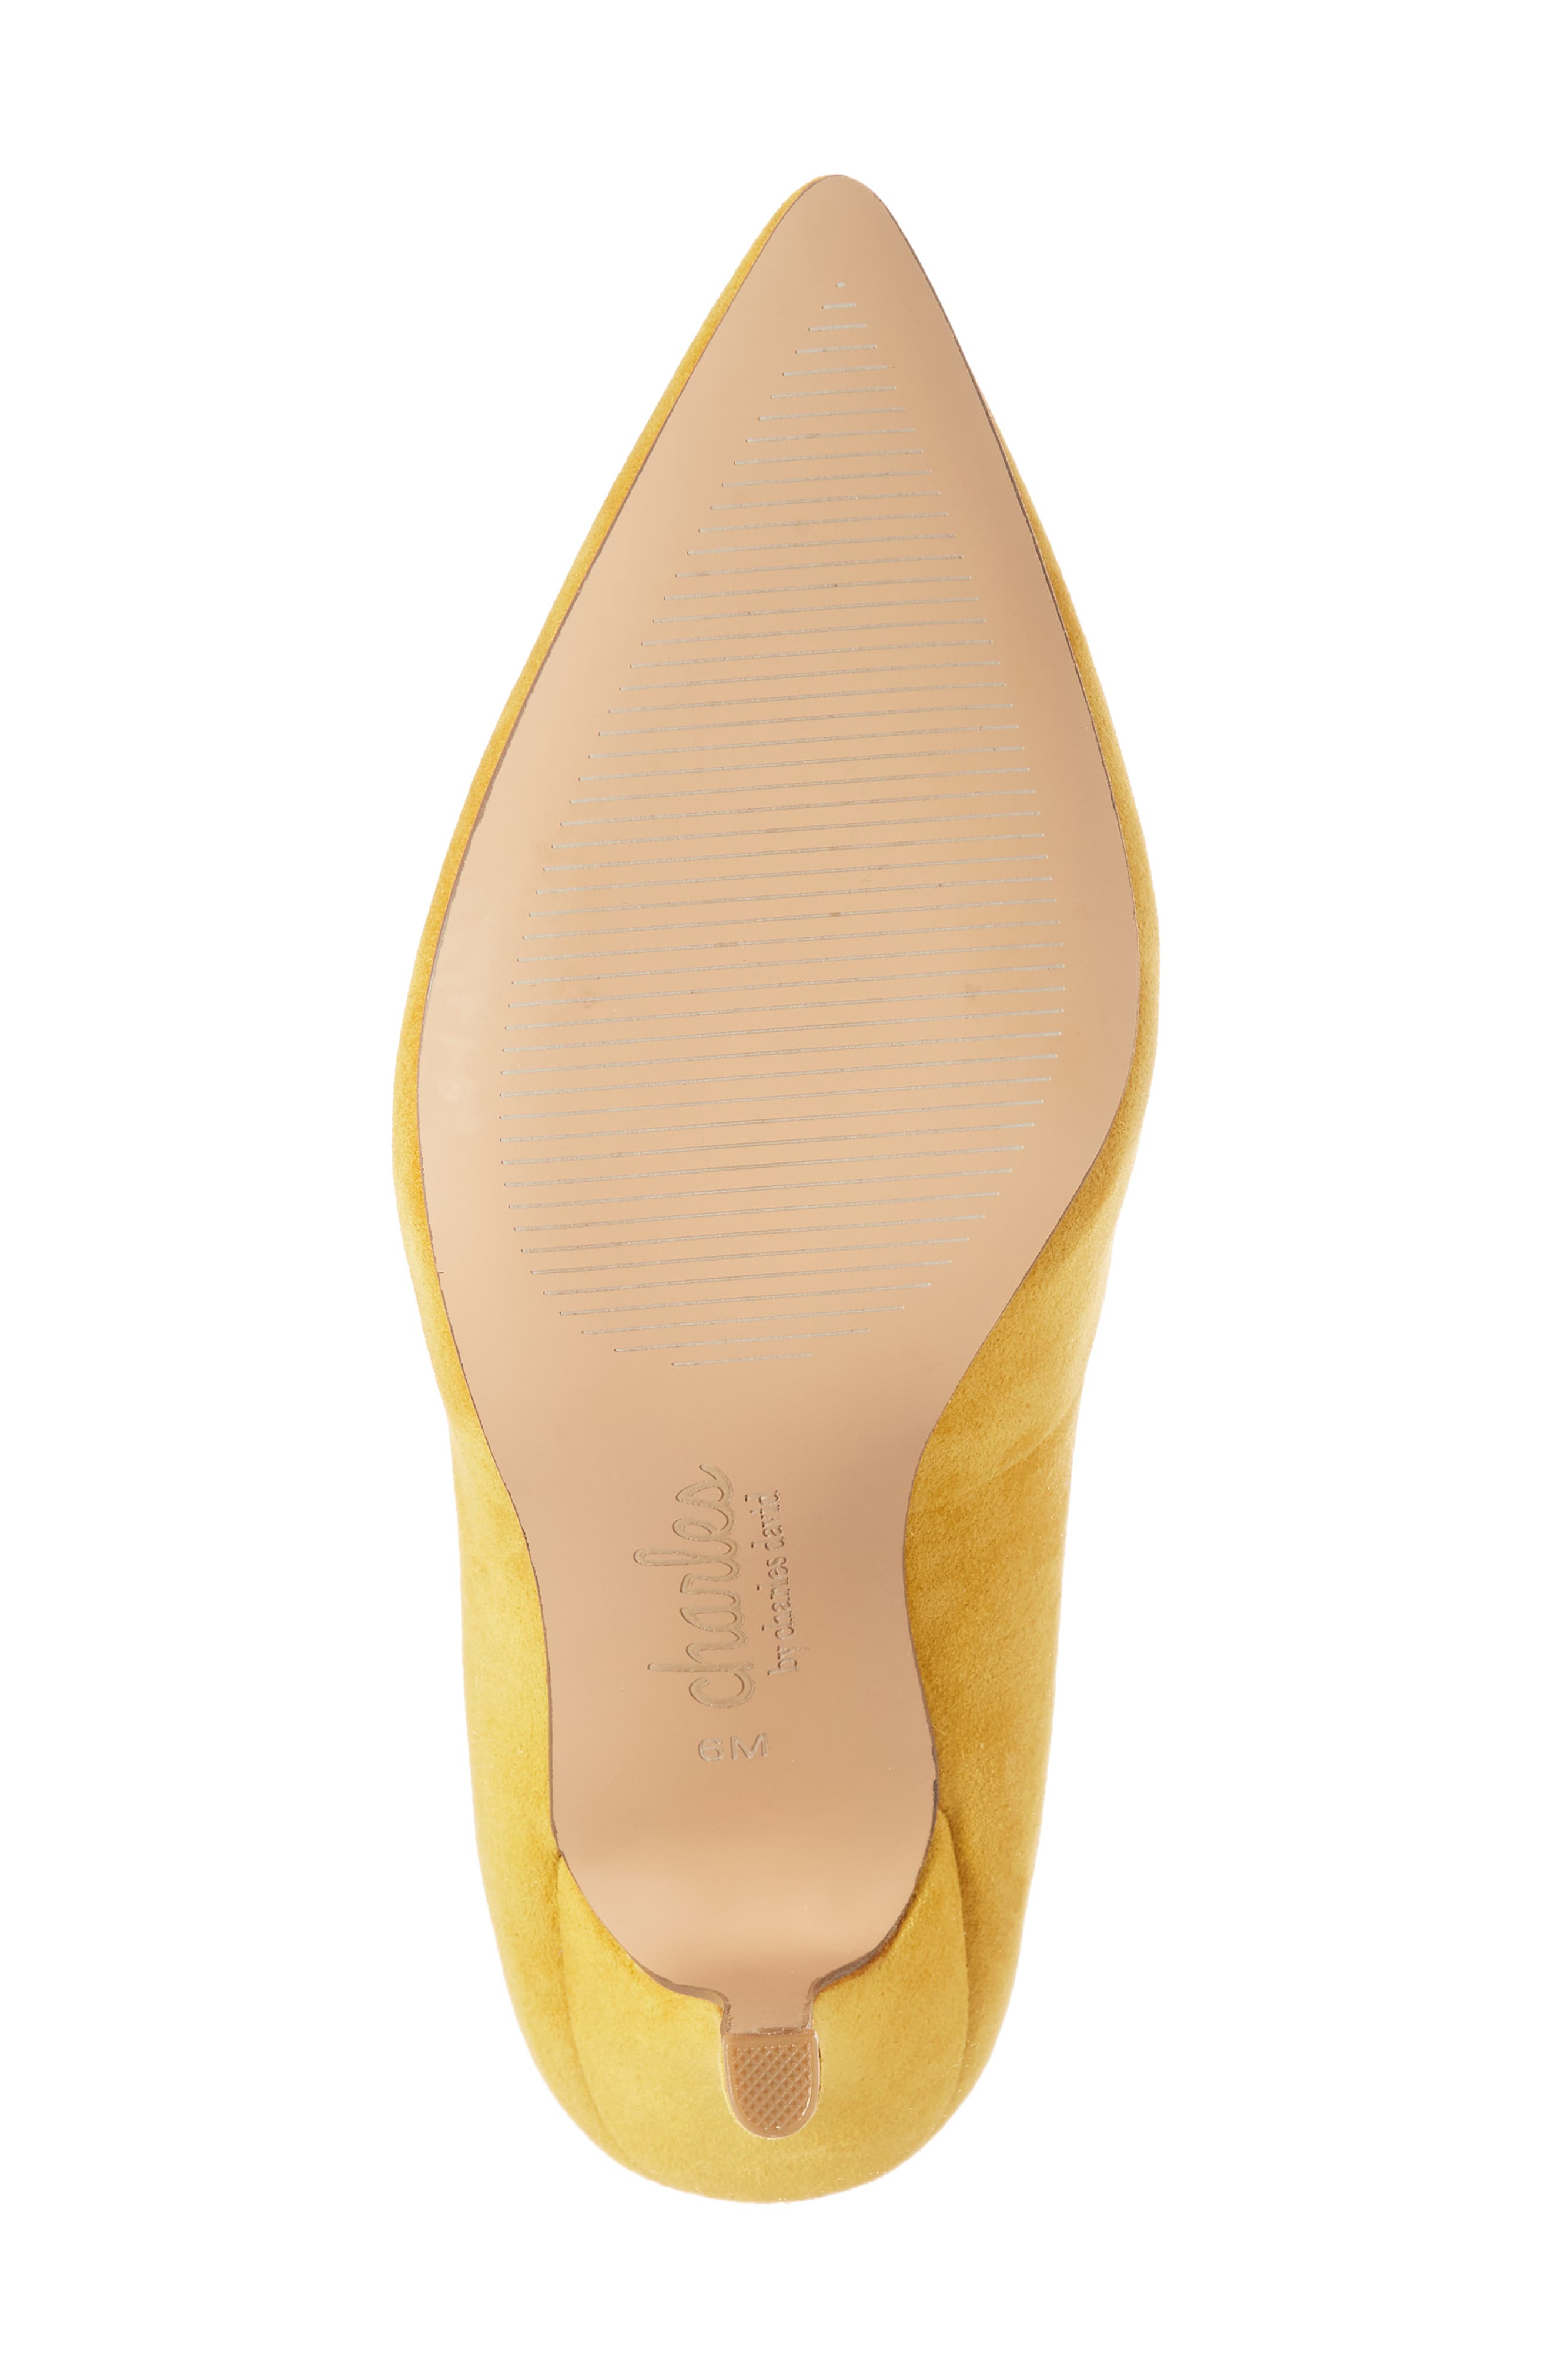 Maxx Pointy Toe Pump,                             Alternate thumbnail 6, color,                             Canary Suede